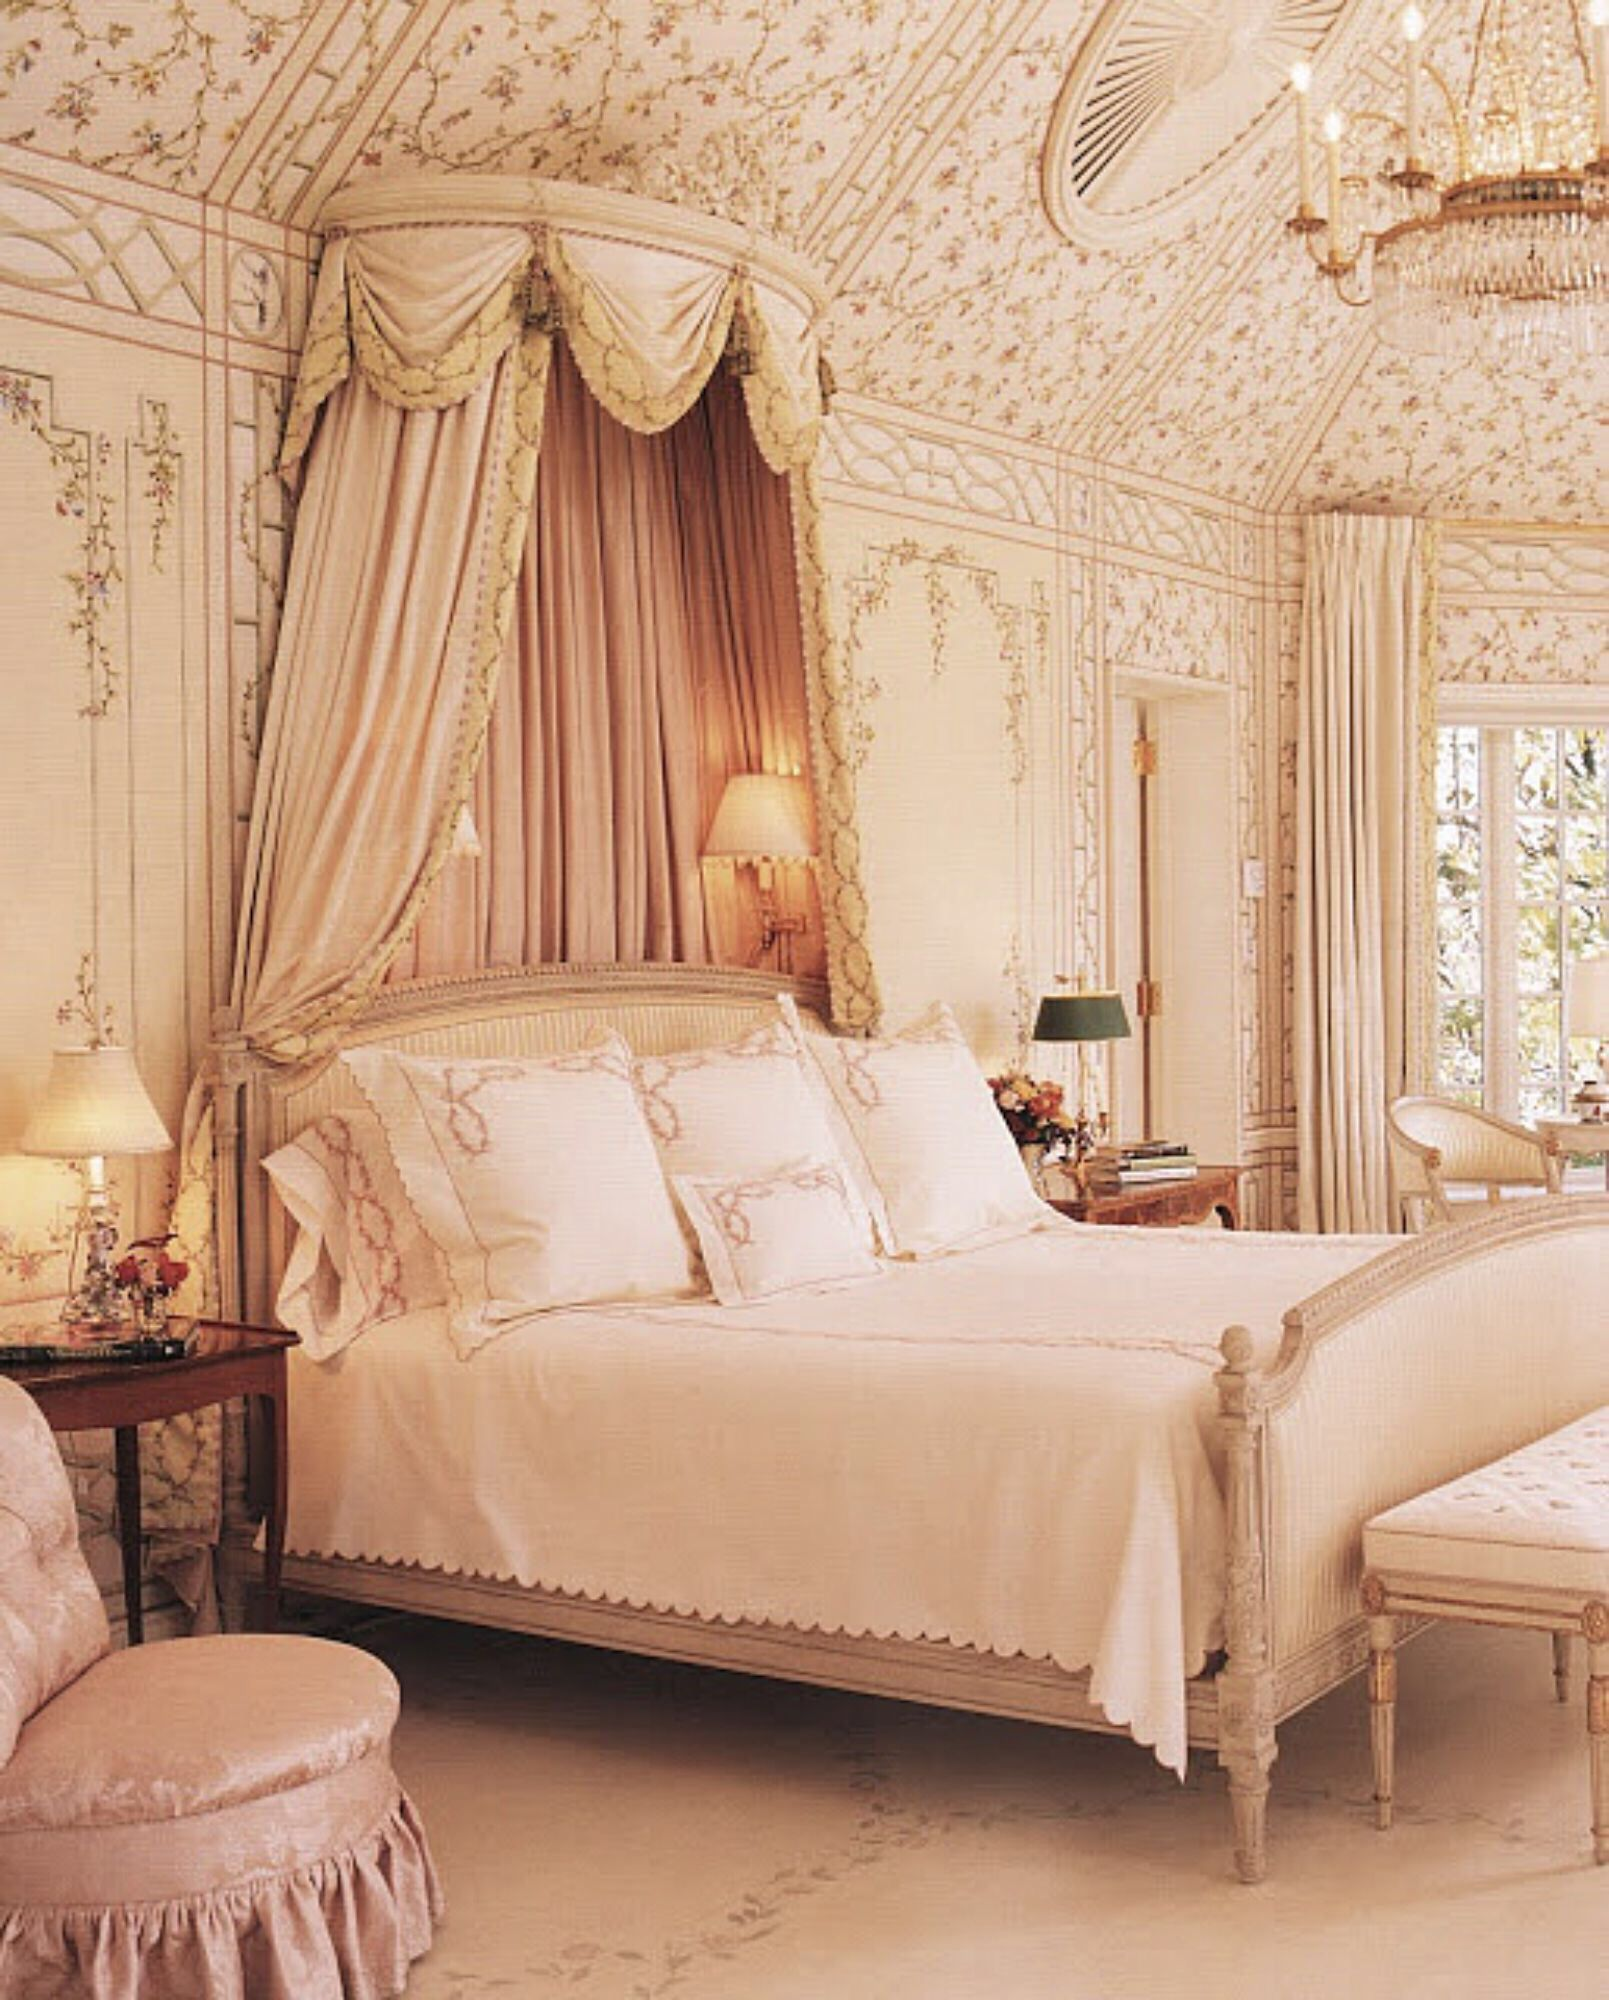 blush pink bedroom, canopy and formal French styling